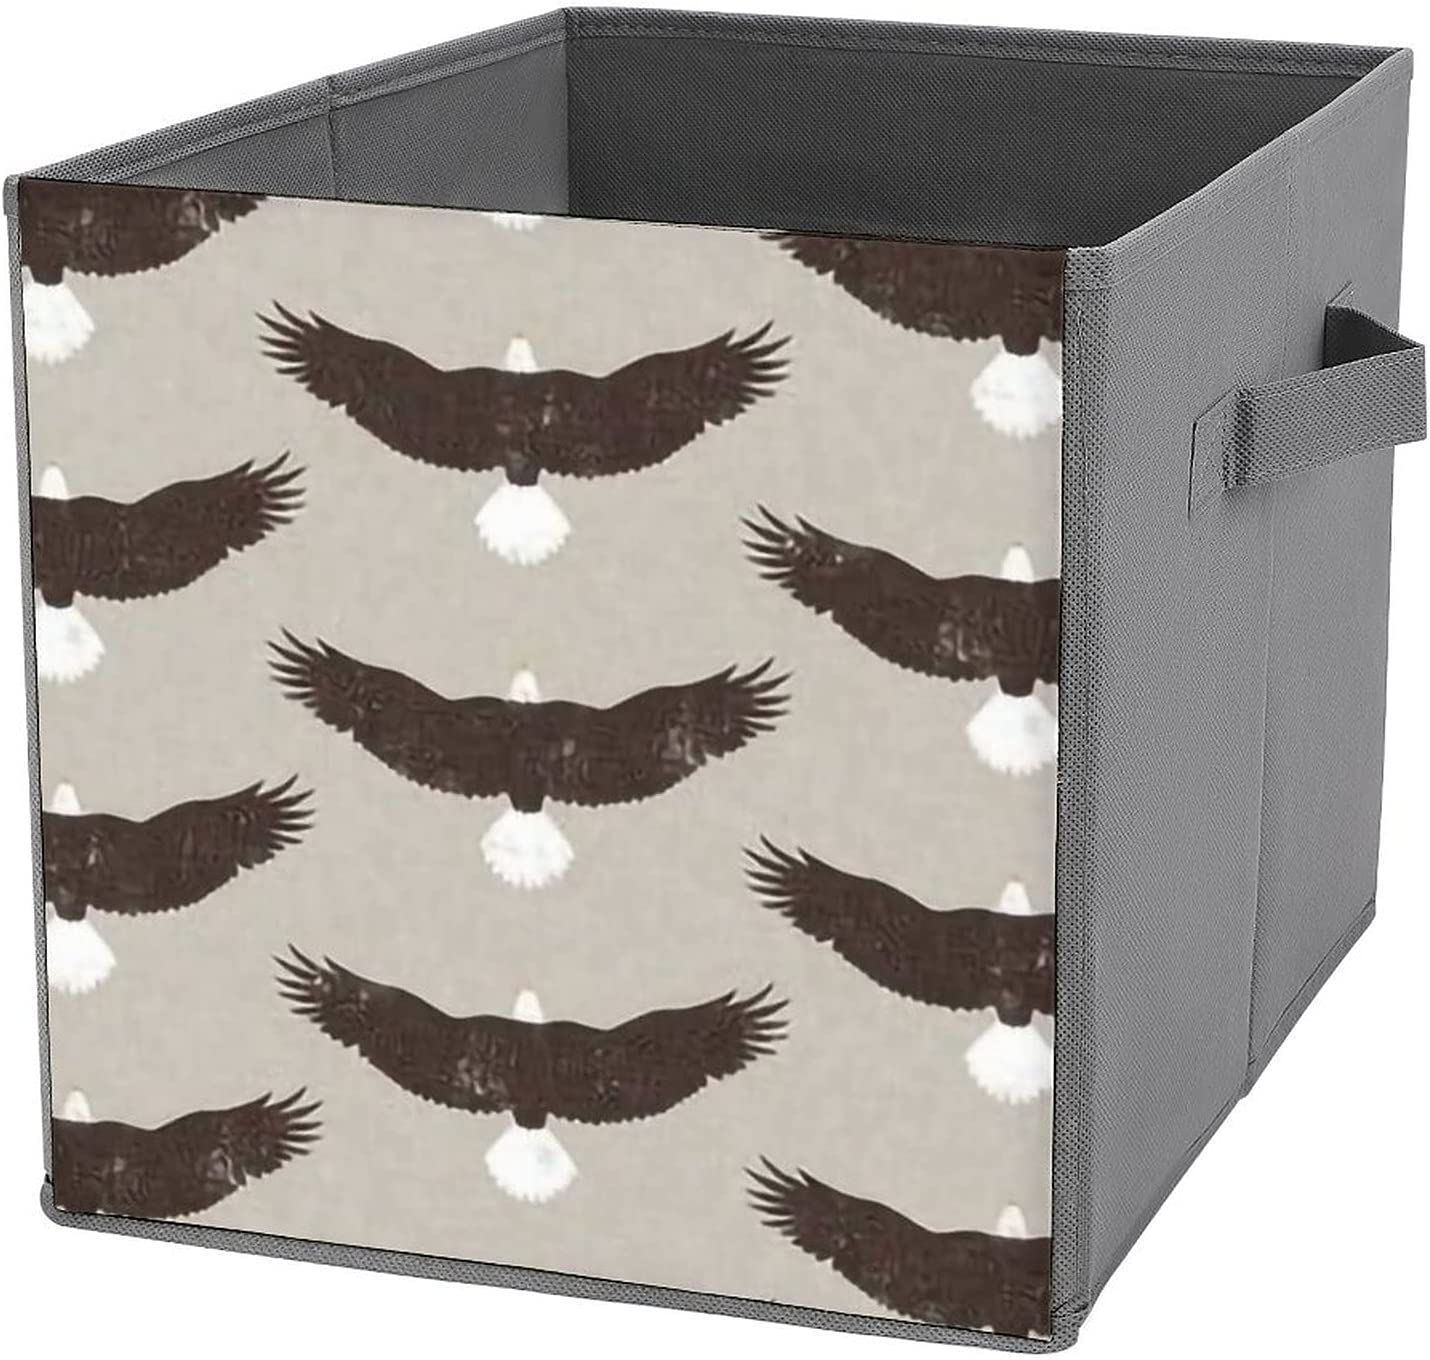 MMJUI Bald Eagles Brown tan Fab Free shipping anywhere in the nation Folding Storage Manufacturer OFFicial shop Collapsible Bins